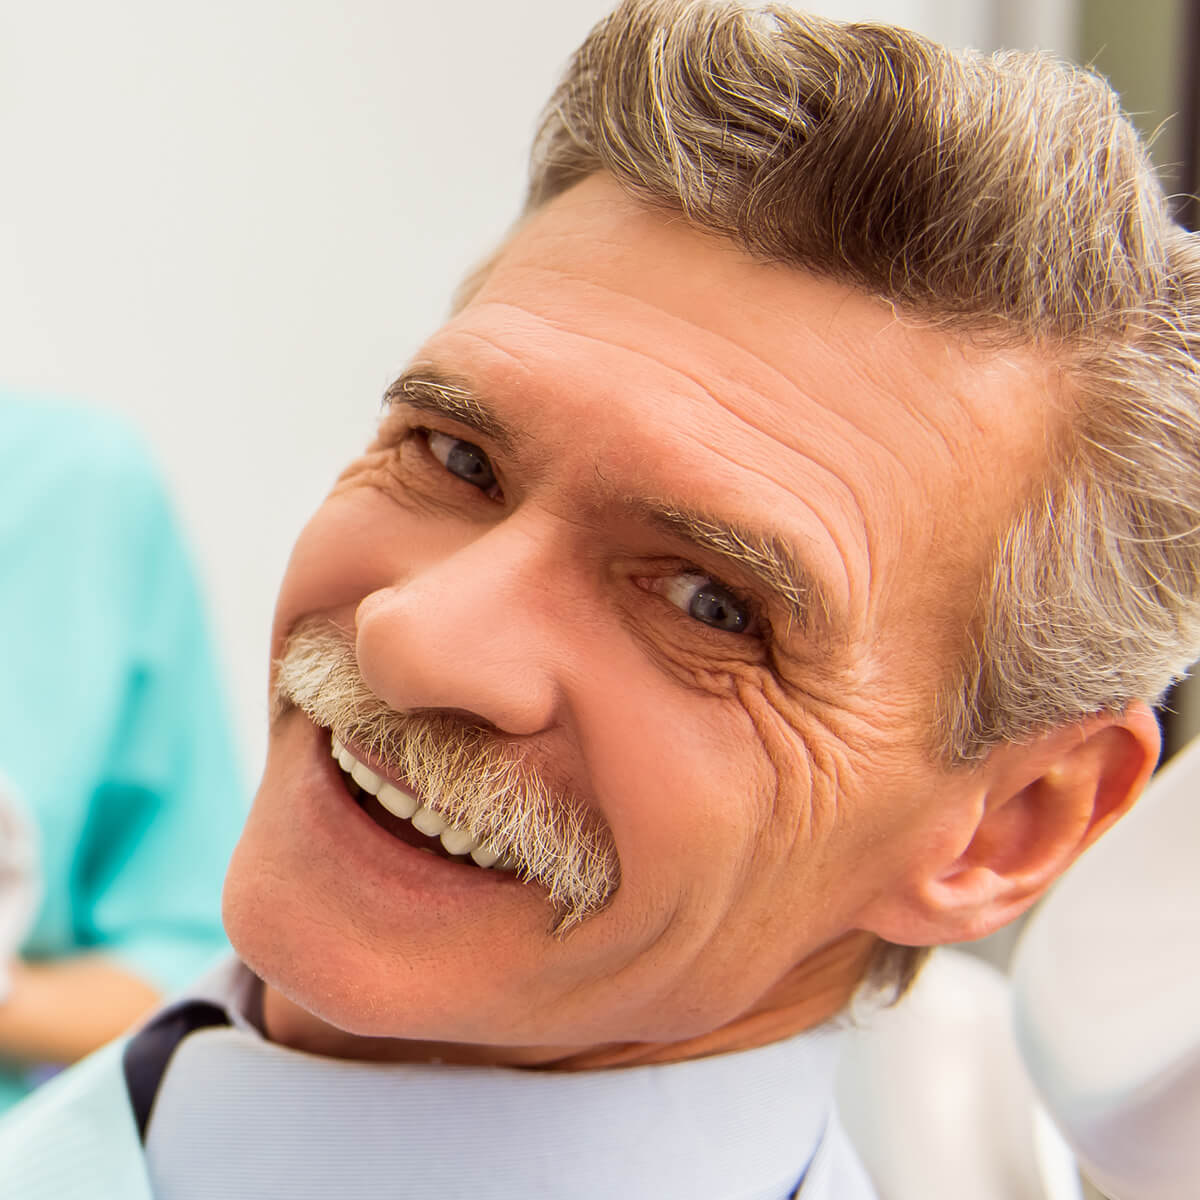 Full vs. Partial Dentures: Which Should I Choose?